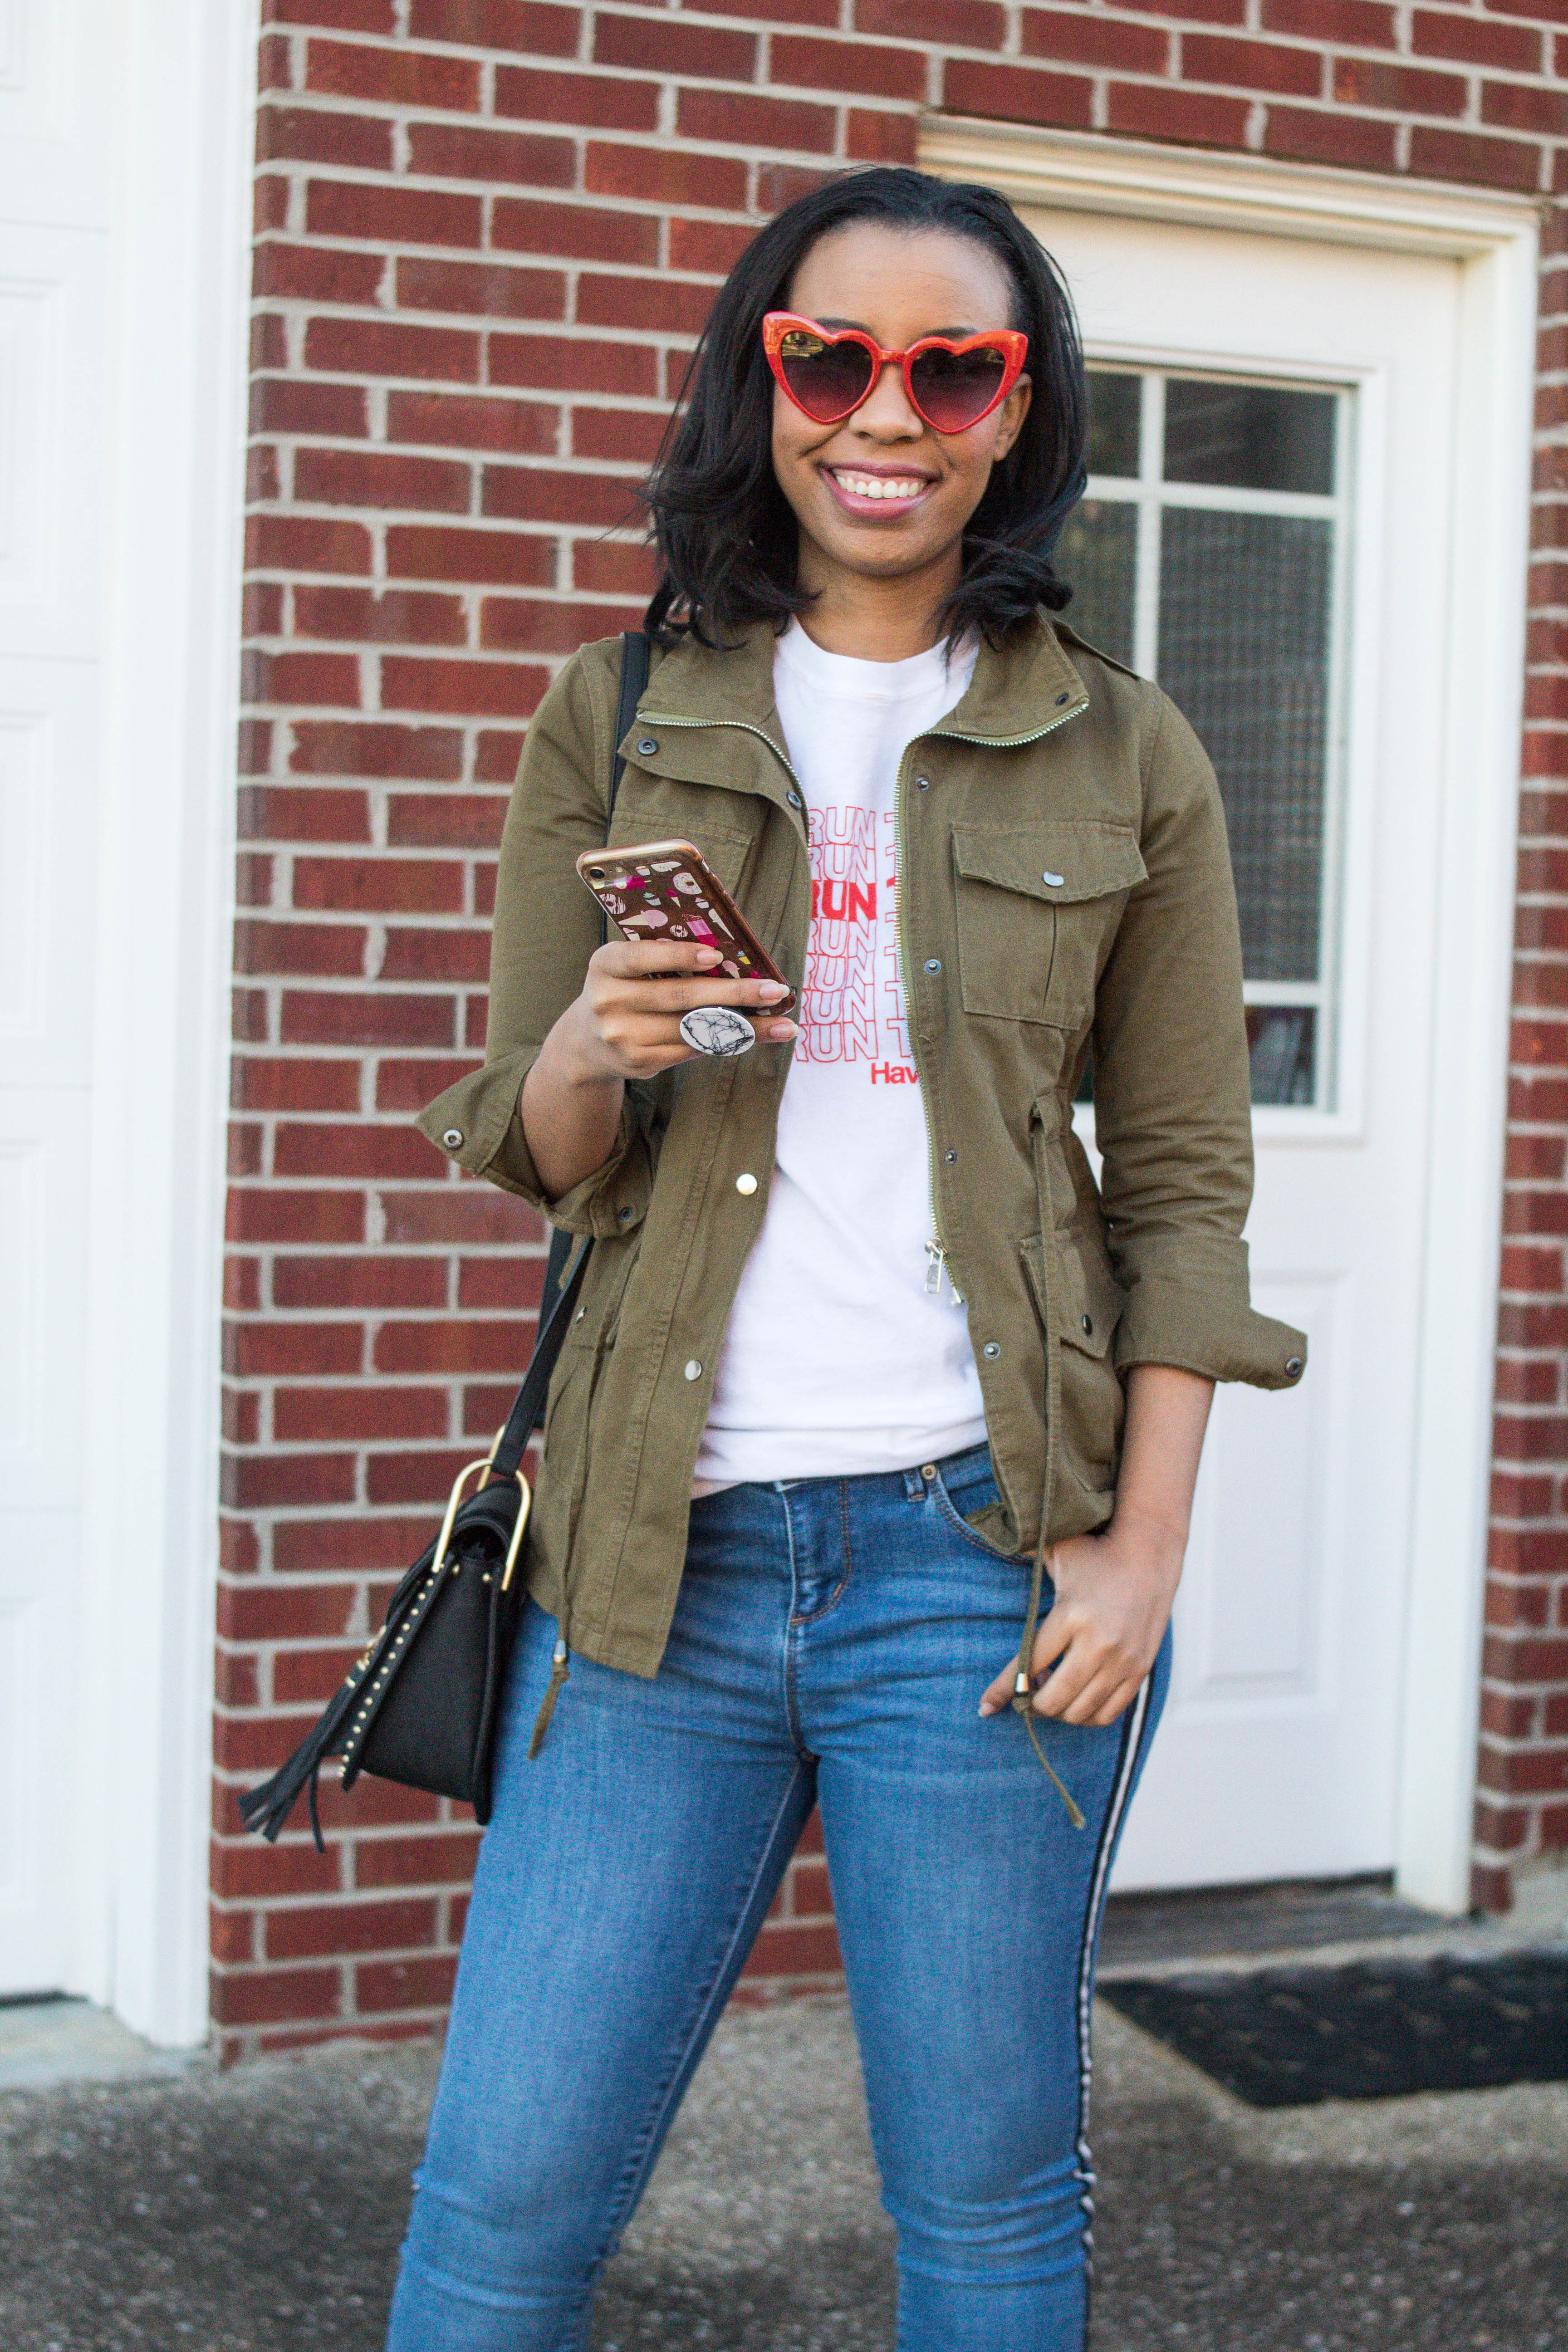 Popular style blogger, What Nicole Wore, shows how to take ten wardrobe staples and create twenty fall outfits with a fall capsule wardrobe. // heart sunglasses, designer dupe sunglasses, gordmans clothing finds, utility jacket outfits, graphic tee styling inspiration